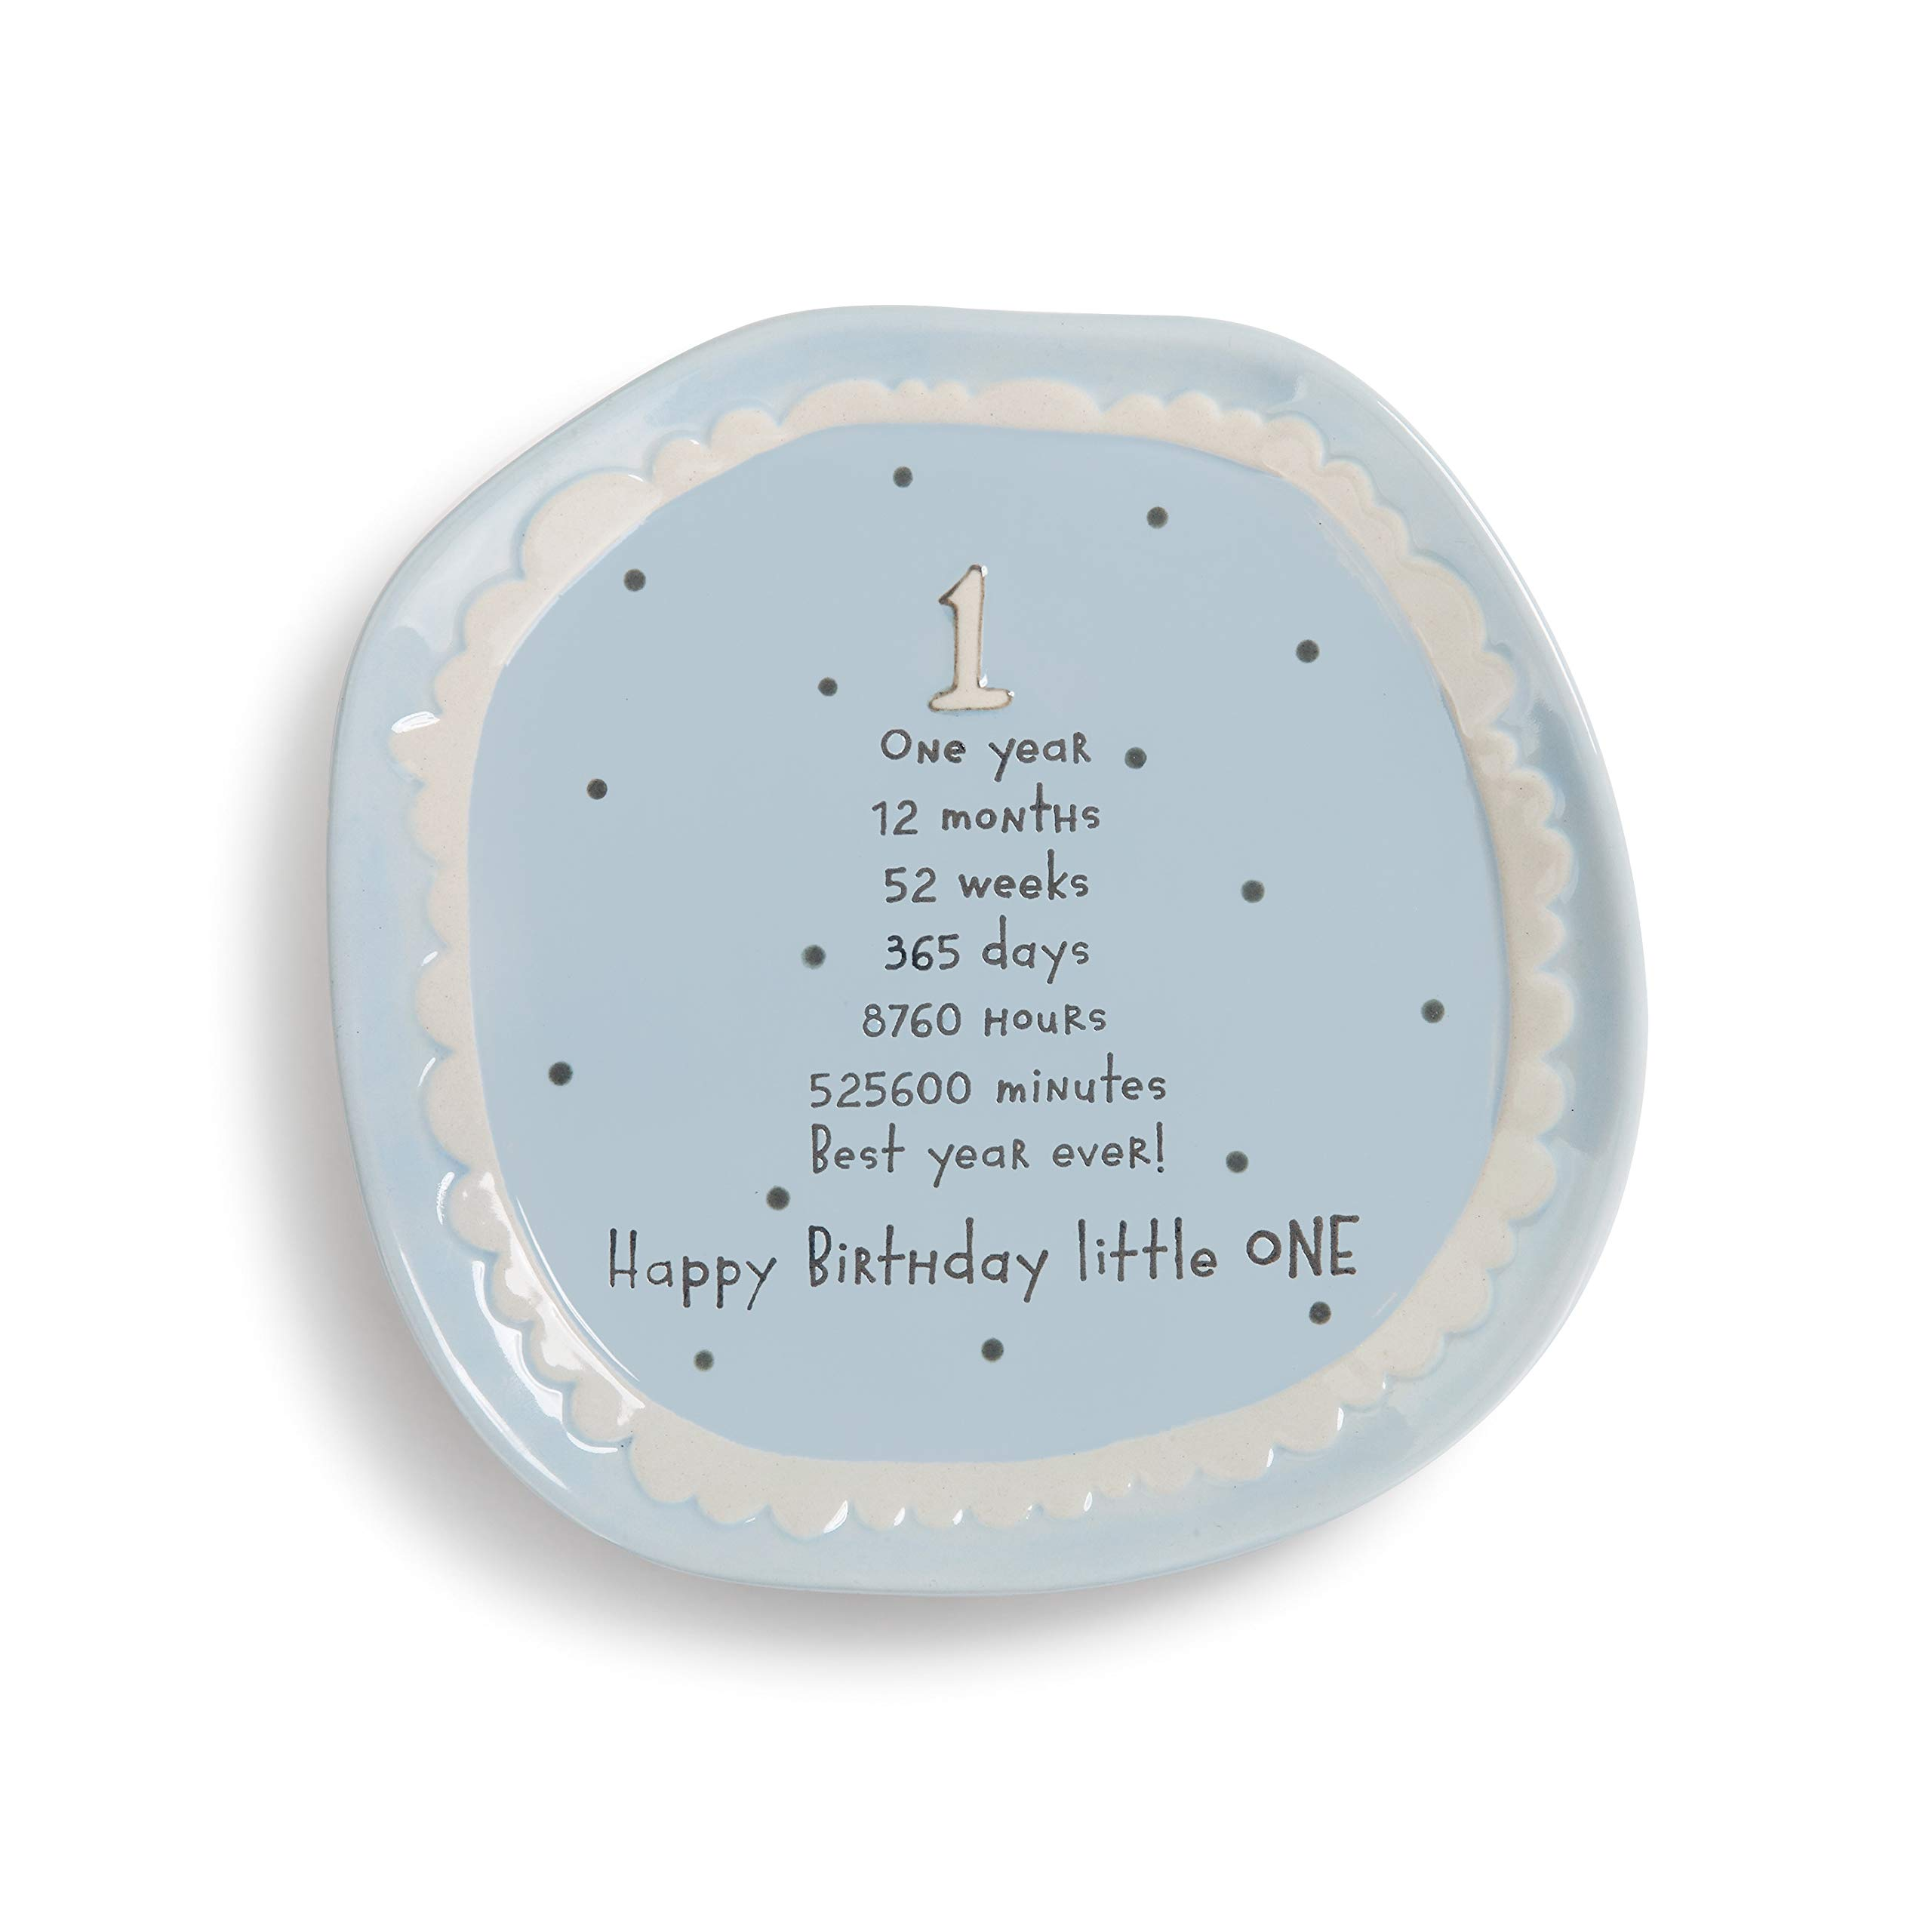 DEMDACO Happy Birthday Little One Blue Polka Dot 7 x 7 Circle Stoneware One Year Cake Dessert Plate